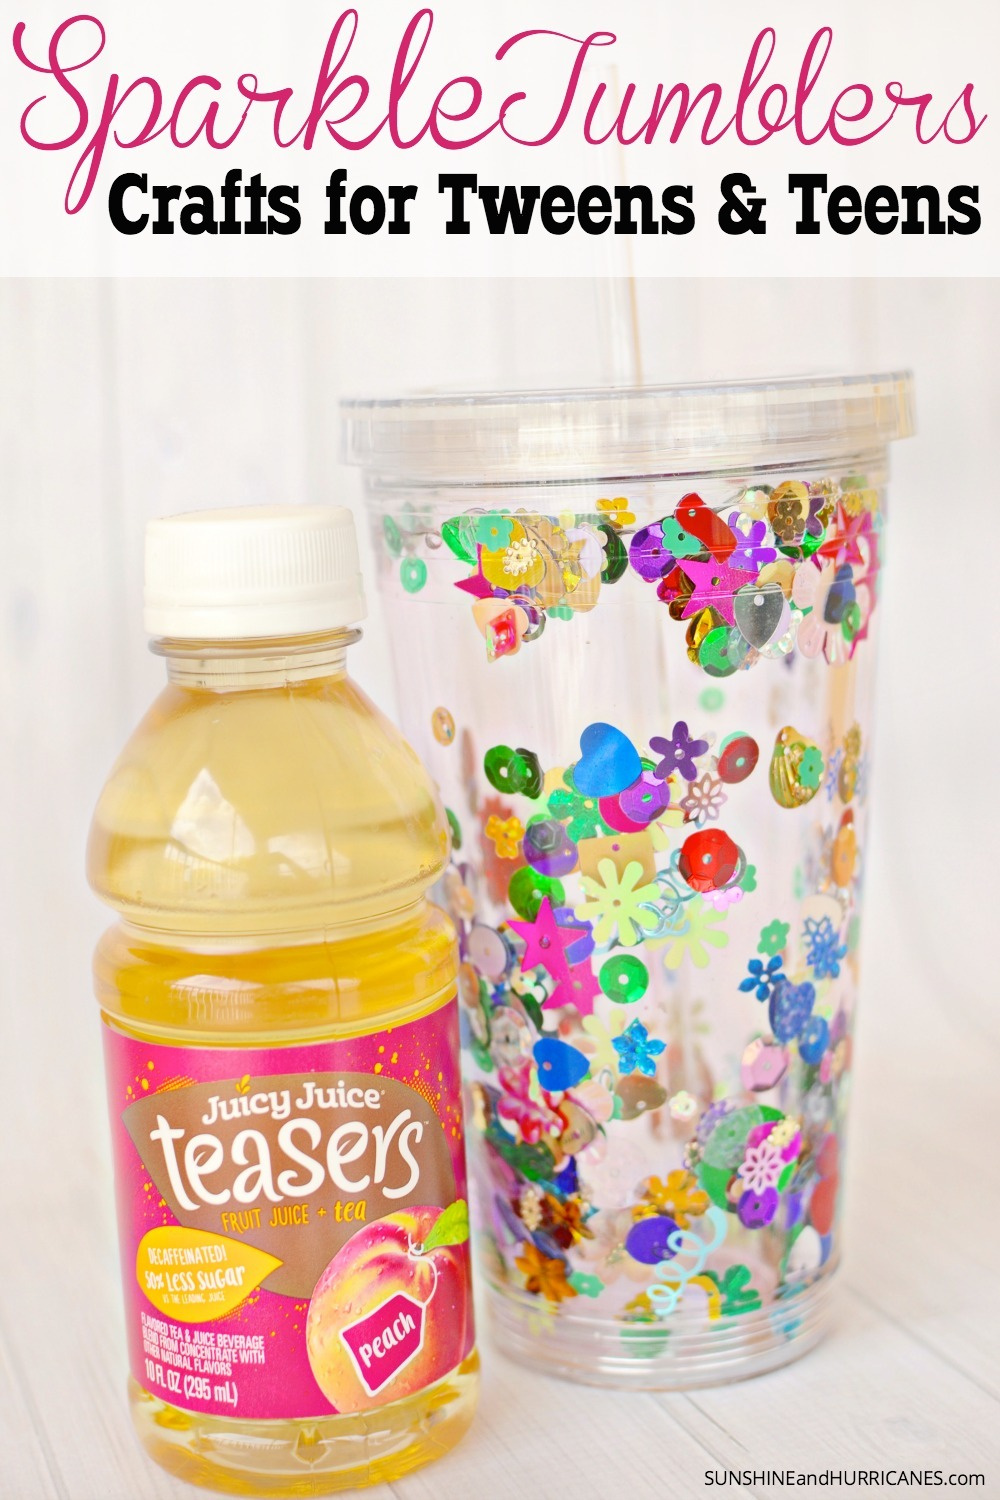 Looking for a fun activity for your teen or tween? These Sparkle Tumblers are a more grown-up craft that will tap into their creativity. They can personalize them with their own flare and then they are great for taking drinks on the go, because tweens and teens are always on the go! Crafts for Teens and Tweens Sparkle Tumblers. SunshineandHurricanes.com